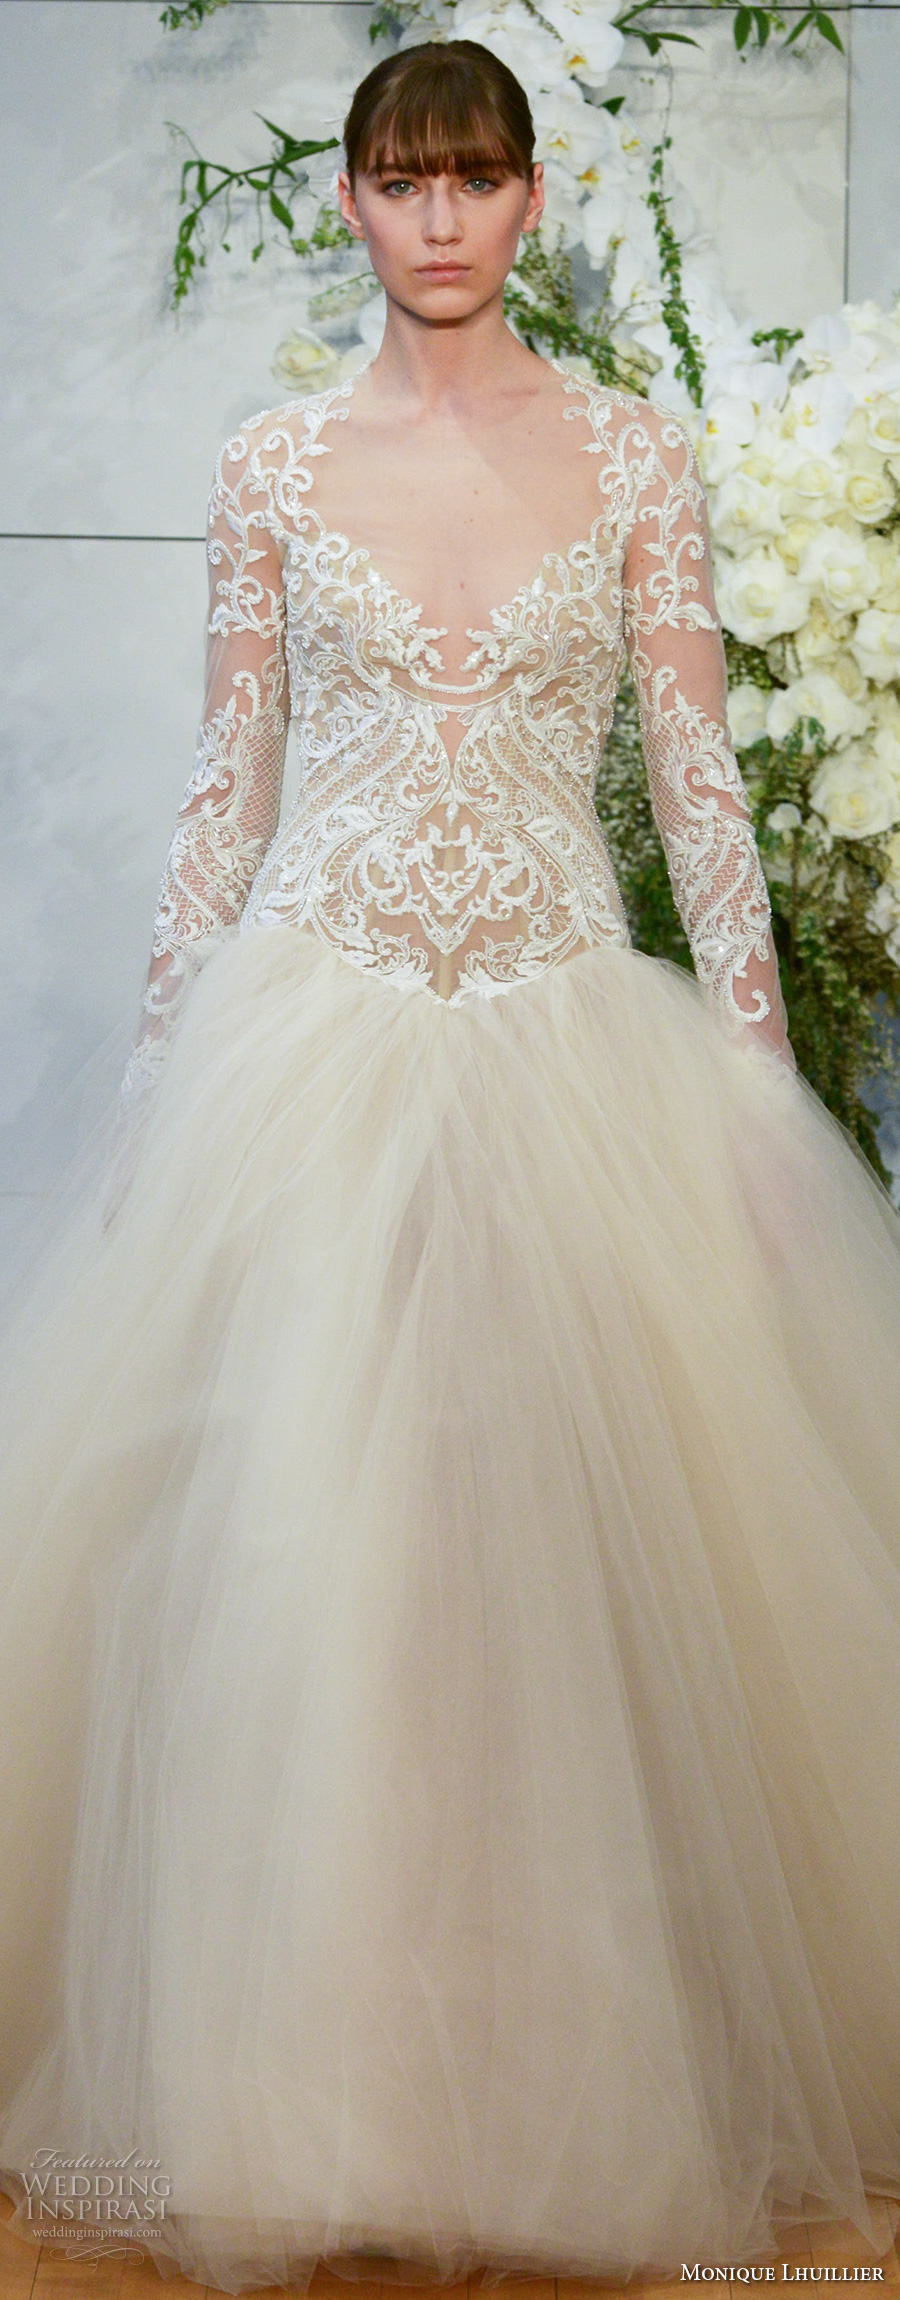 monique lhuillier spring 2018 bridal long sleeves halter v neck heavily embellished lace bodice tulle skirt ivory color princess ball gown covered lace back chapel (marguerite) zv